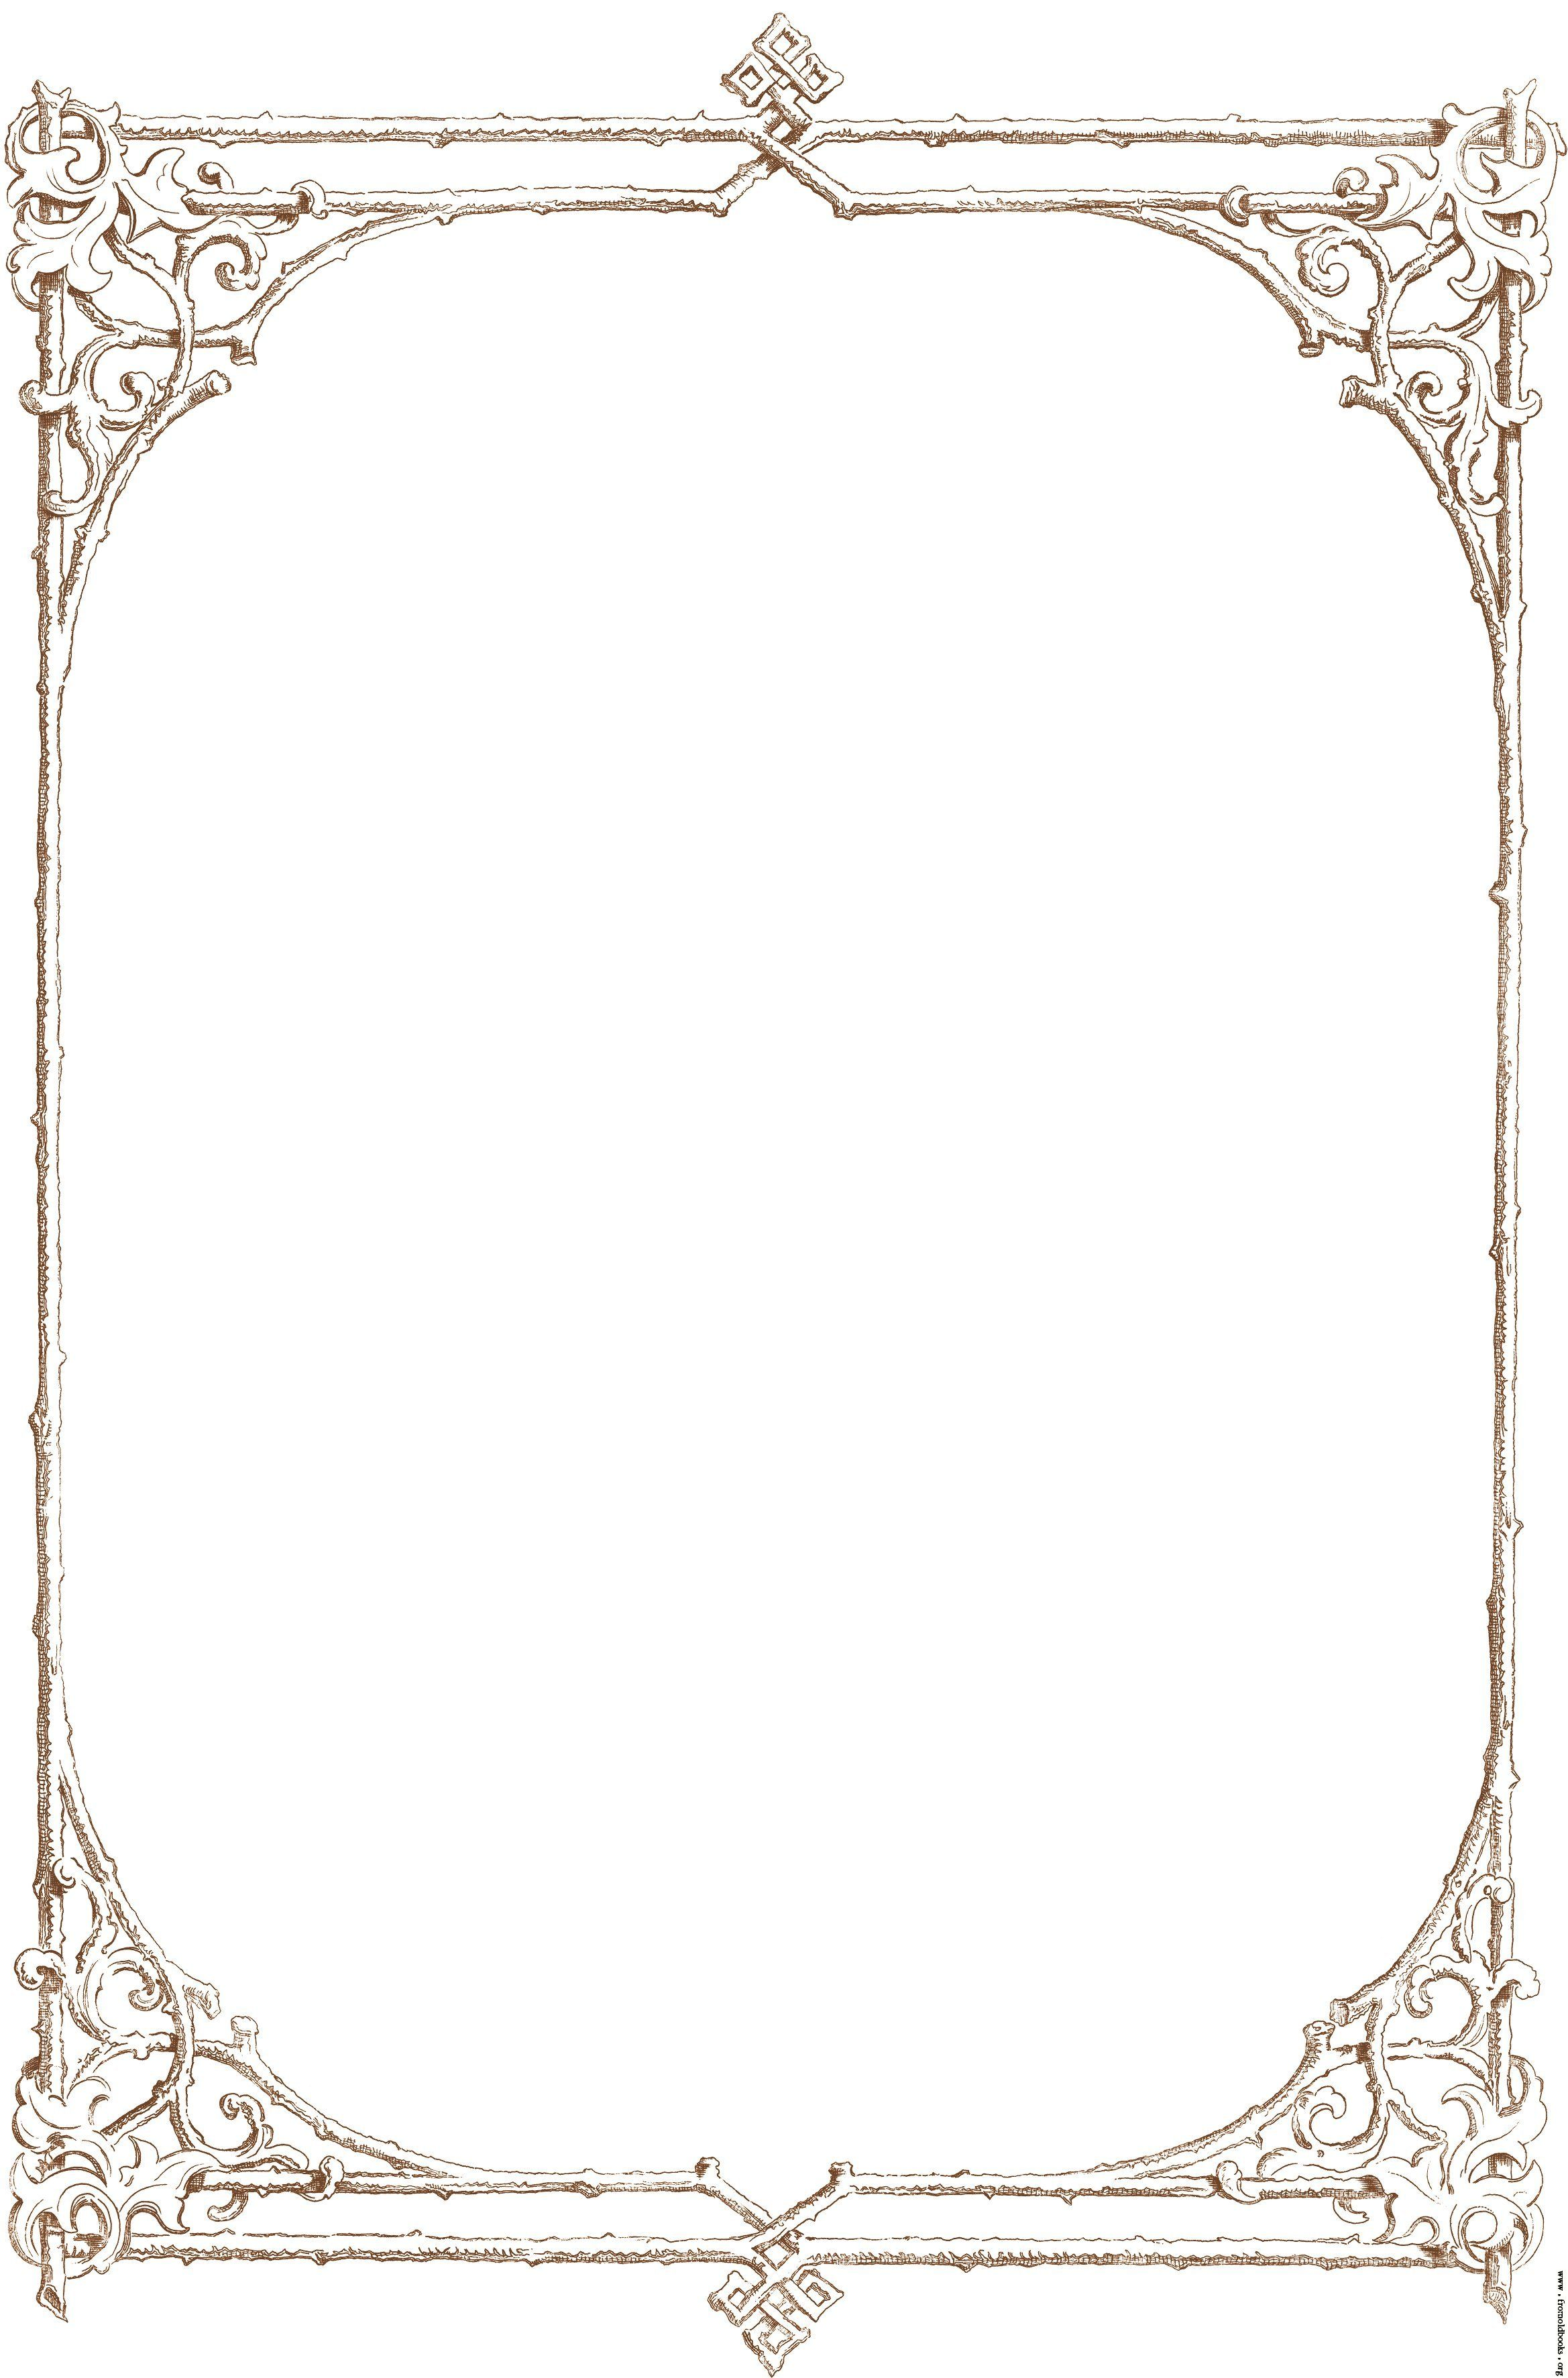 Free Clip Art Victorian Border Of Brown Twigs Details.